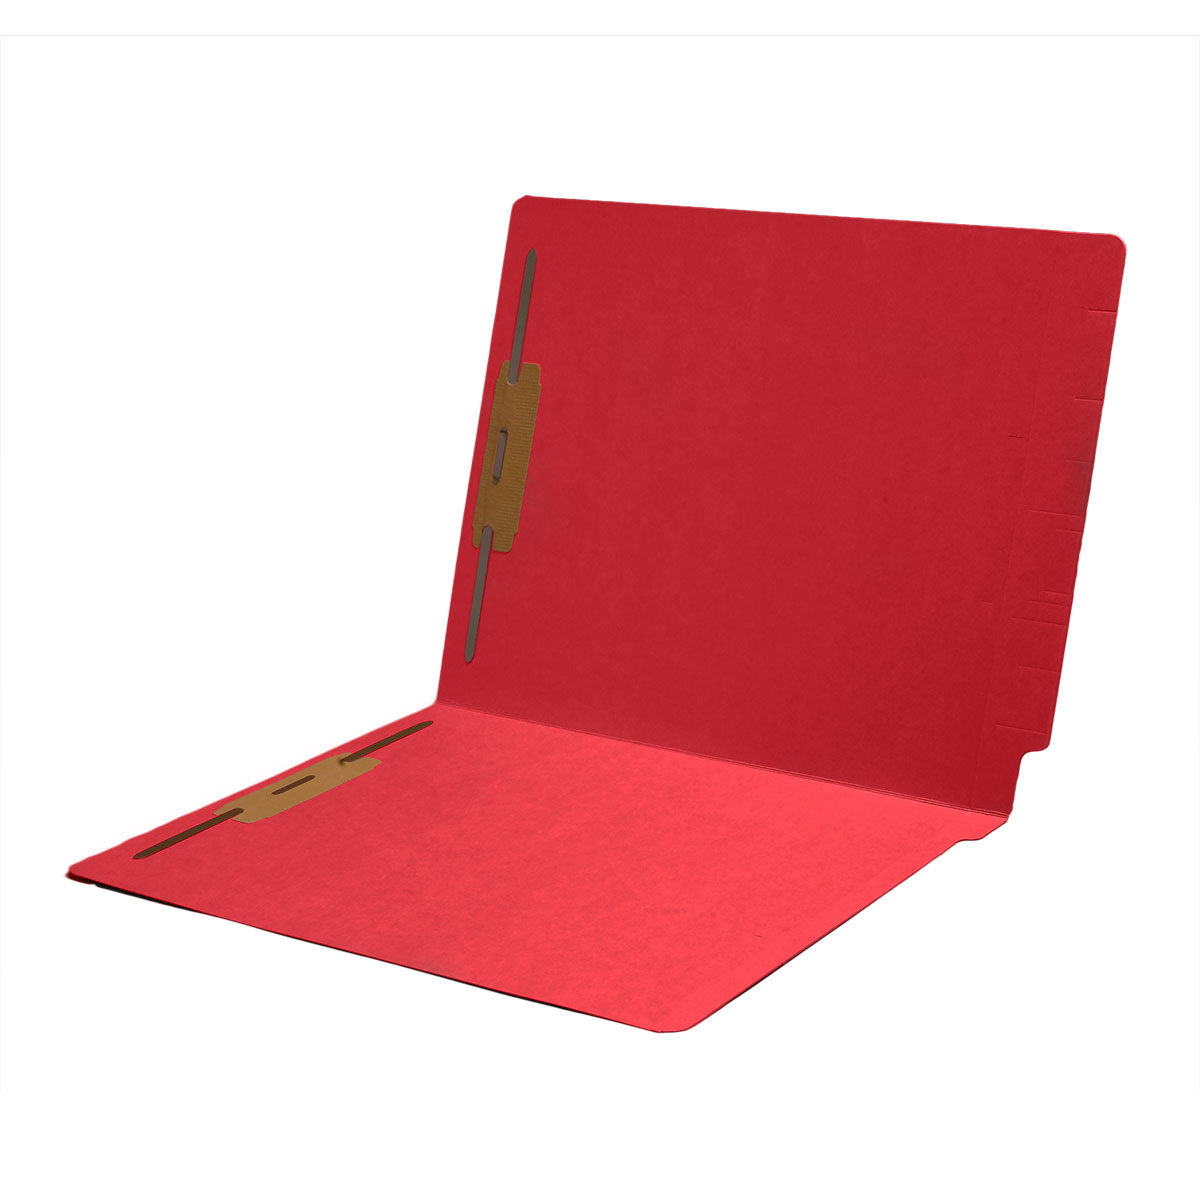 S-1602-RED - 14 pt Color Folders, Full Cut 2-Ply End Tab, Letter Size, 2 Fasteners in Pos #1 & #3, Red (Box of 50)